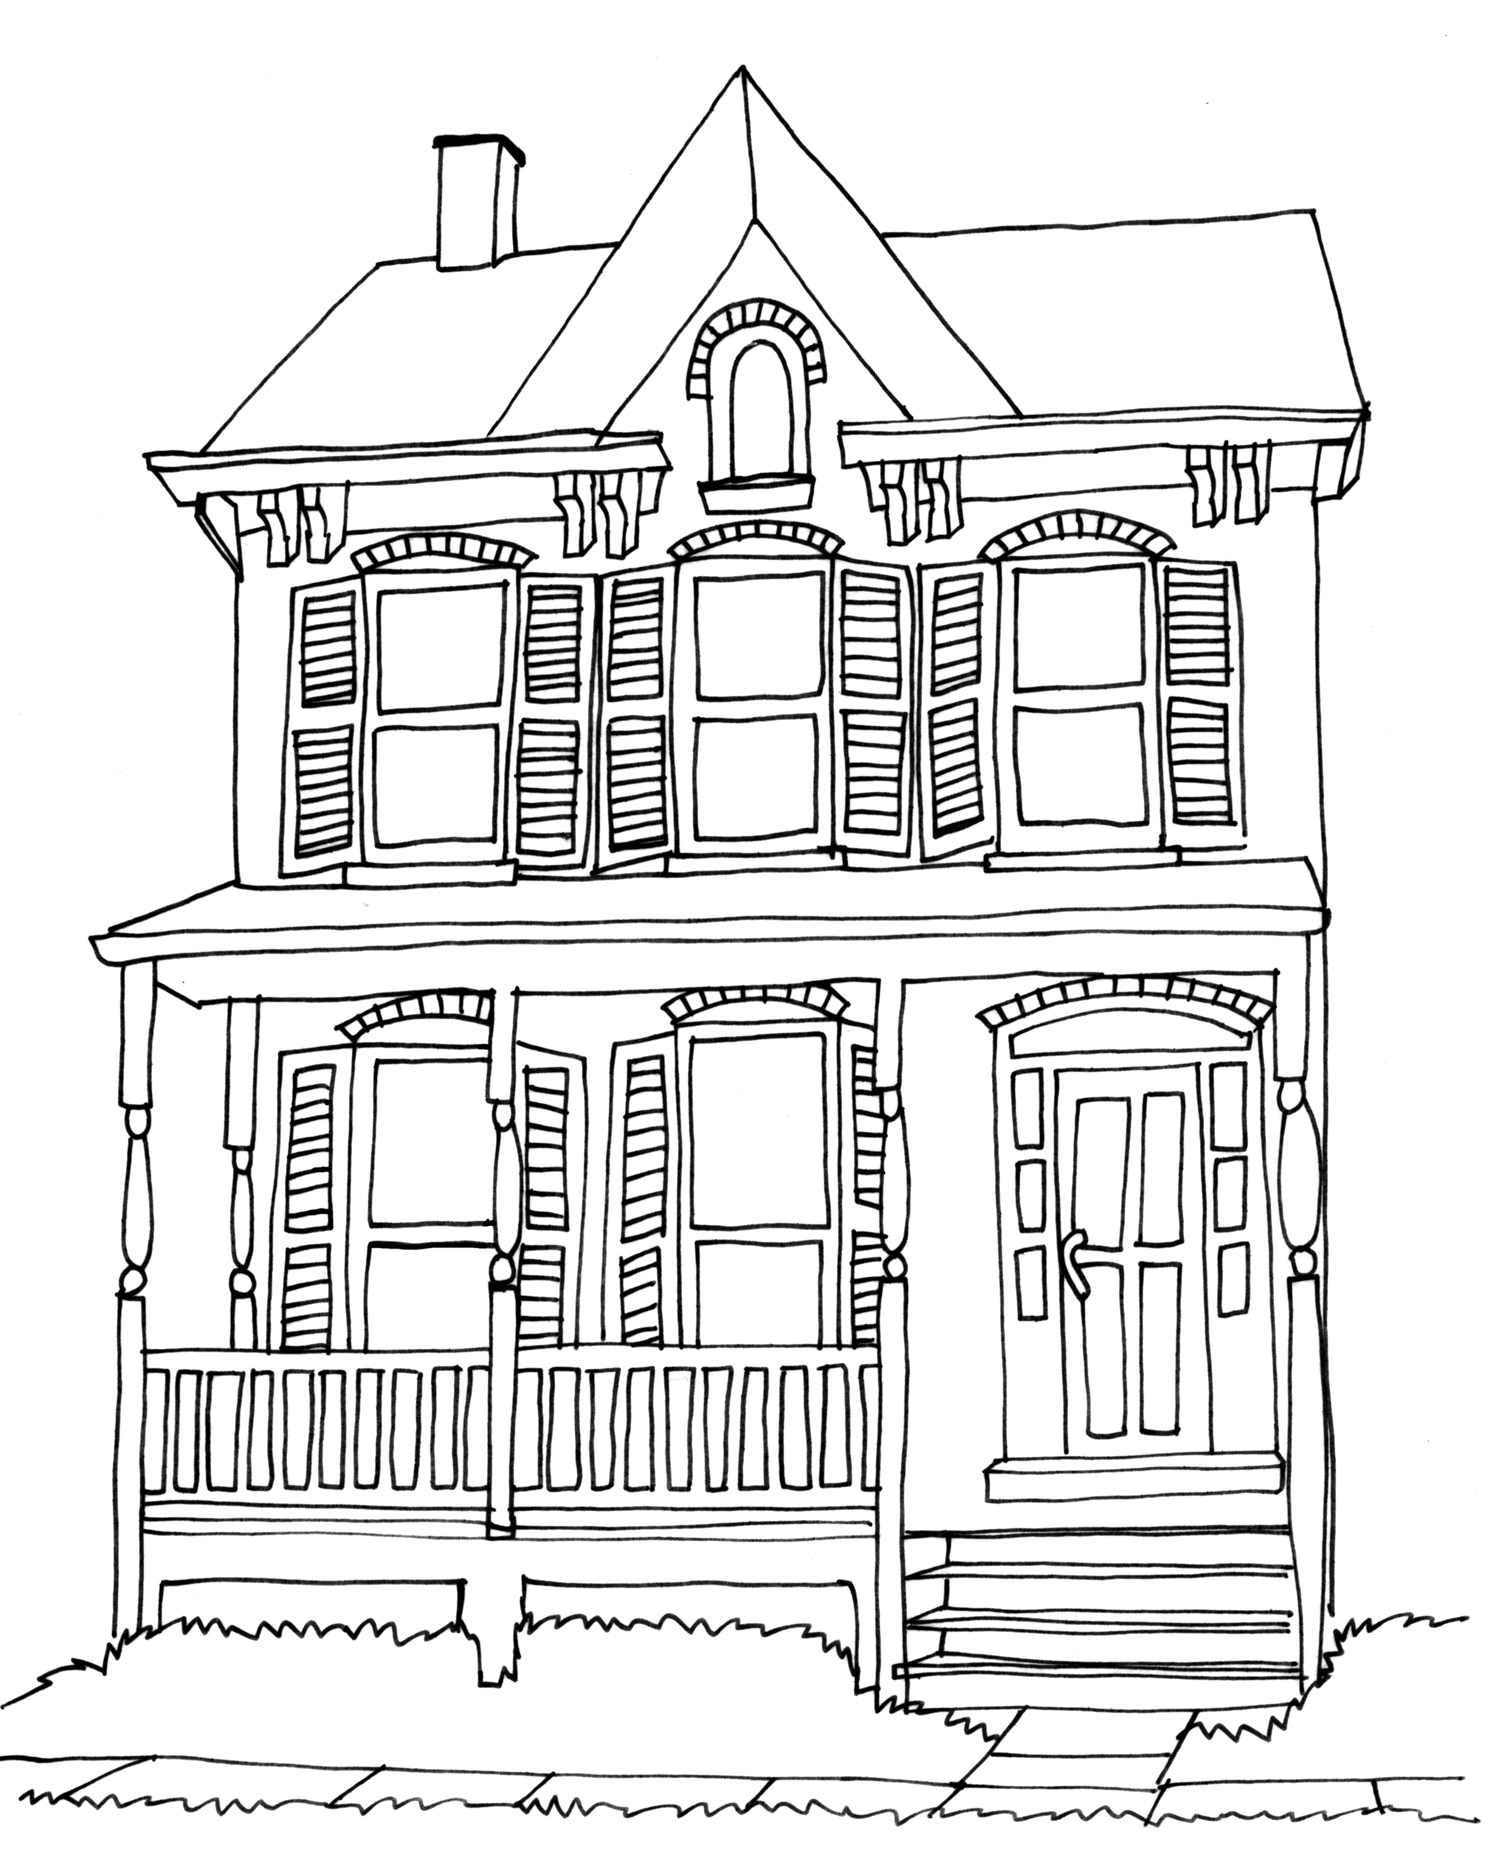 5250 Square Feet 4 Bedrooms 4 5 Bathroom Craftsman Home Plans 4 Garage 19947 further B21da6161adcb2ce Spanish Colonial Homes Floor Plans Spanish Style Homes With Courtyards also House Plan West Facing Mp4 Youtube 7 as well Lovepapervintage wordpress likewise Townhouse Floor Plans. on small victorian homes